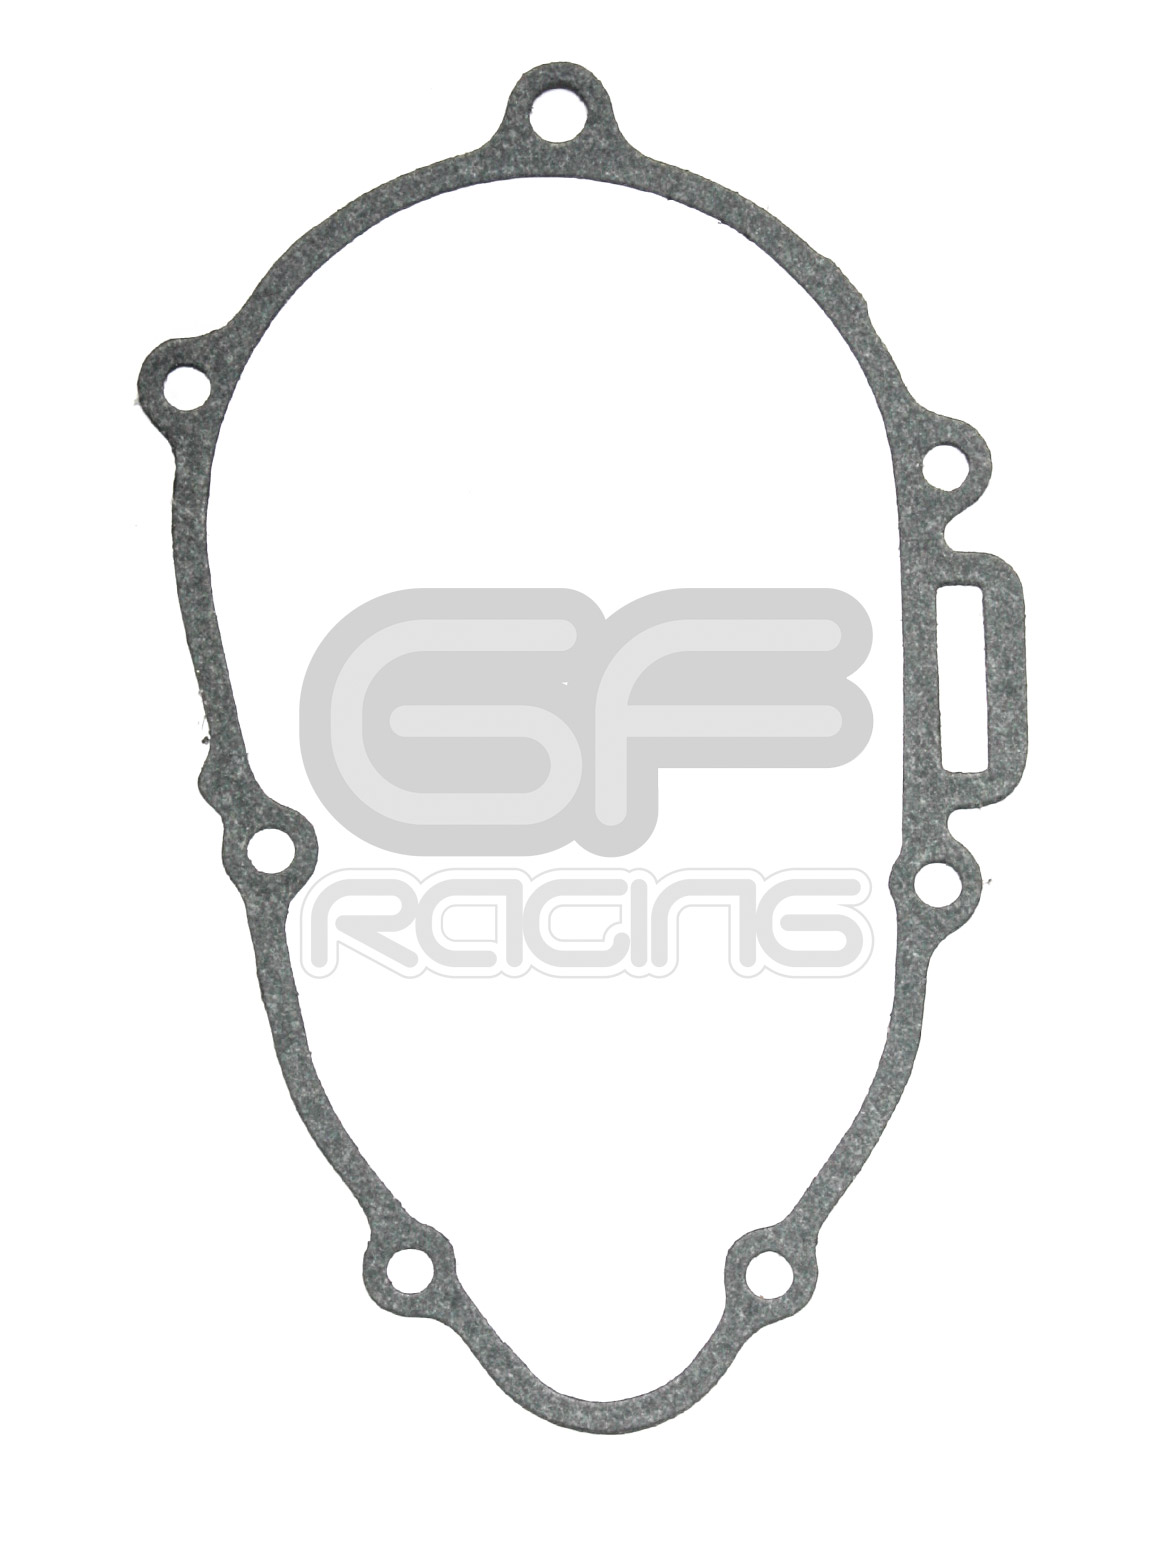 NC23 NC29 Gasket Timing Cover